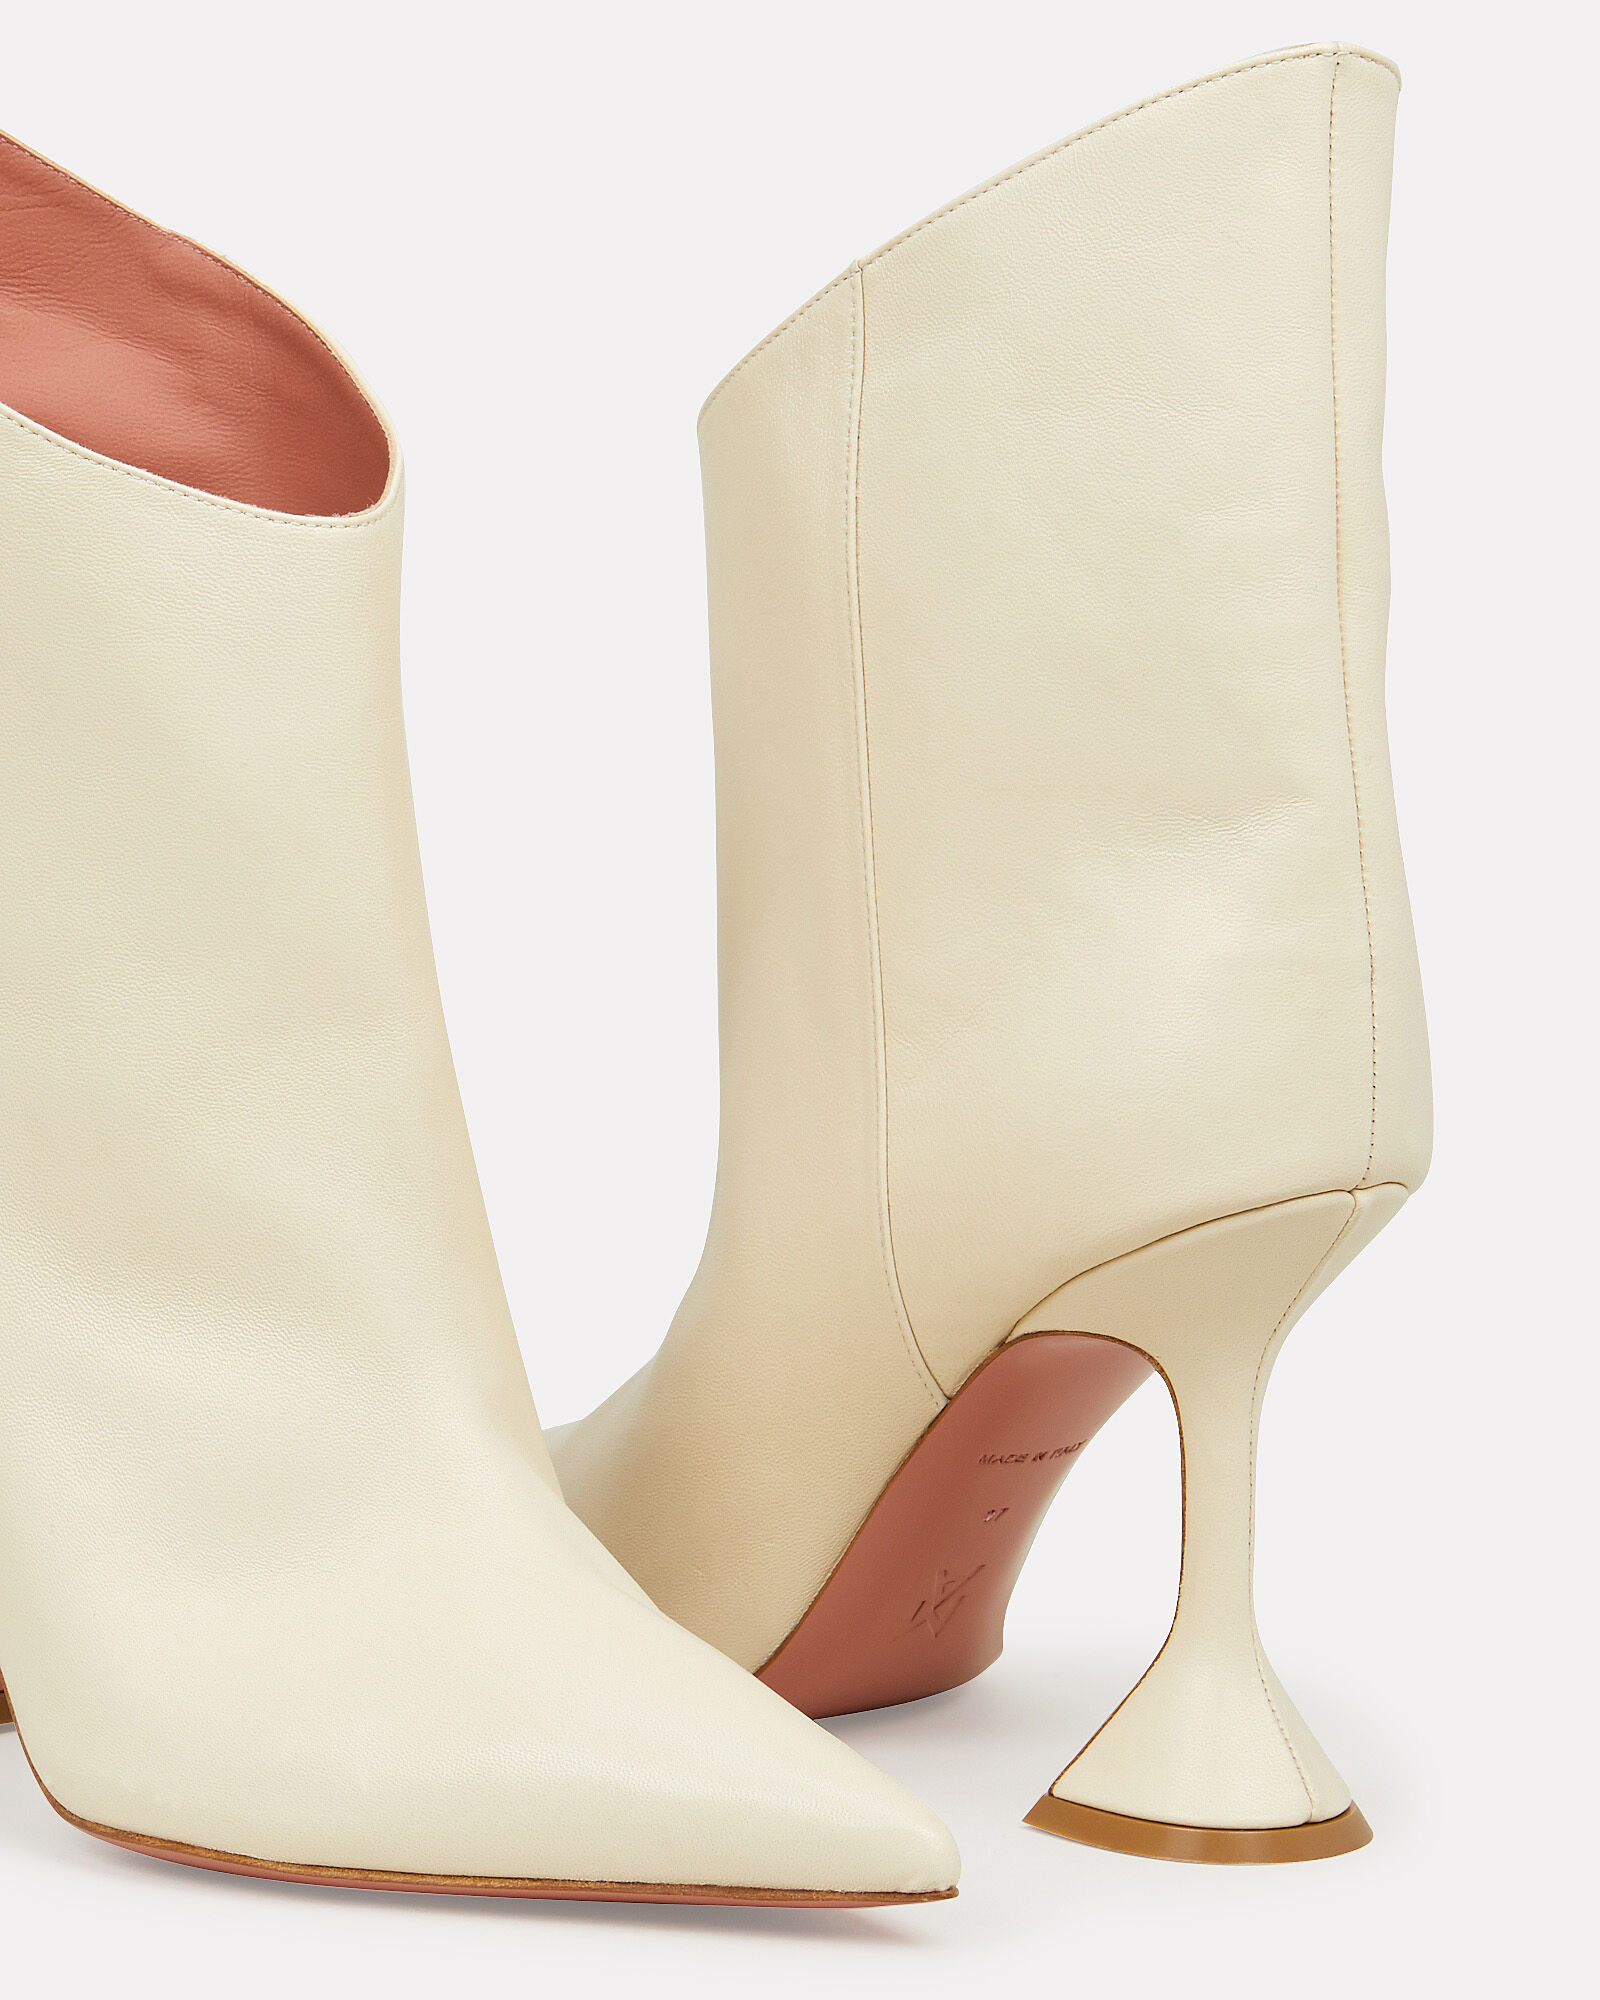 Iman Asymmetrical Leather Booties, IVORY, hi-res